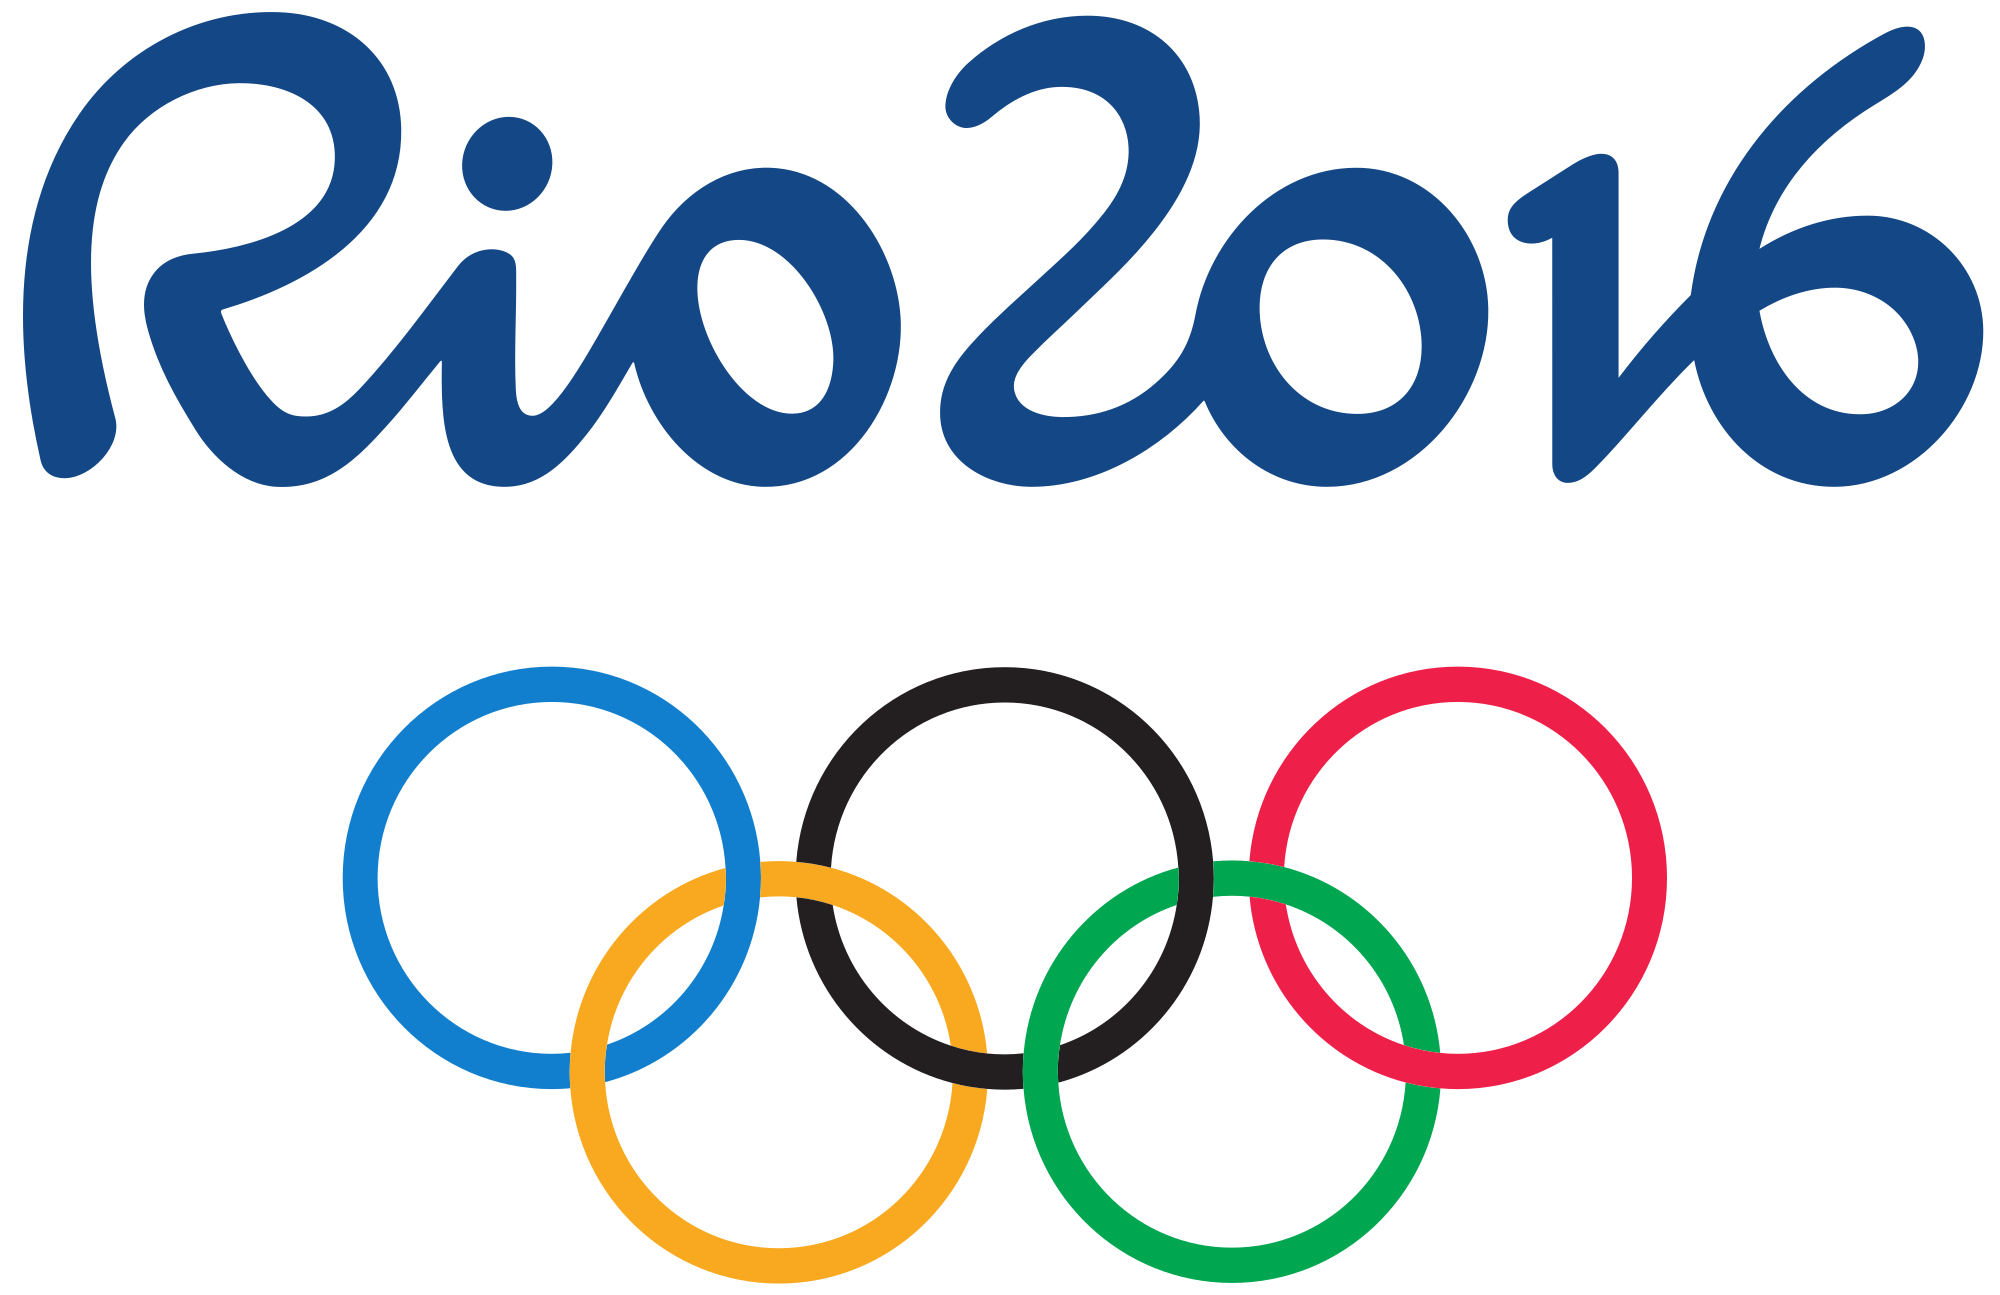 Rio 2016 logo png. File svg wikimedia commons